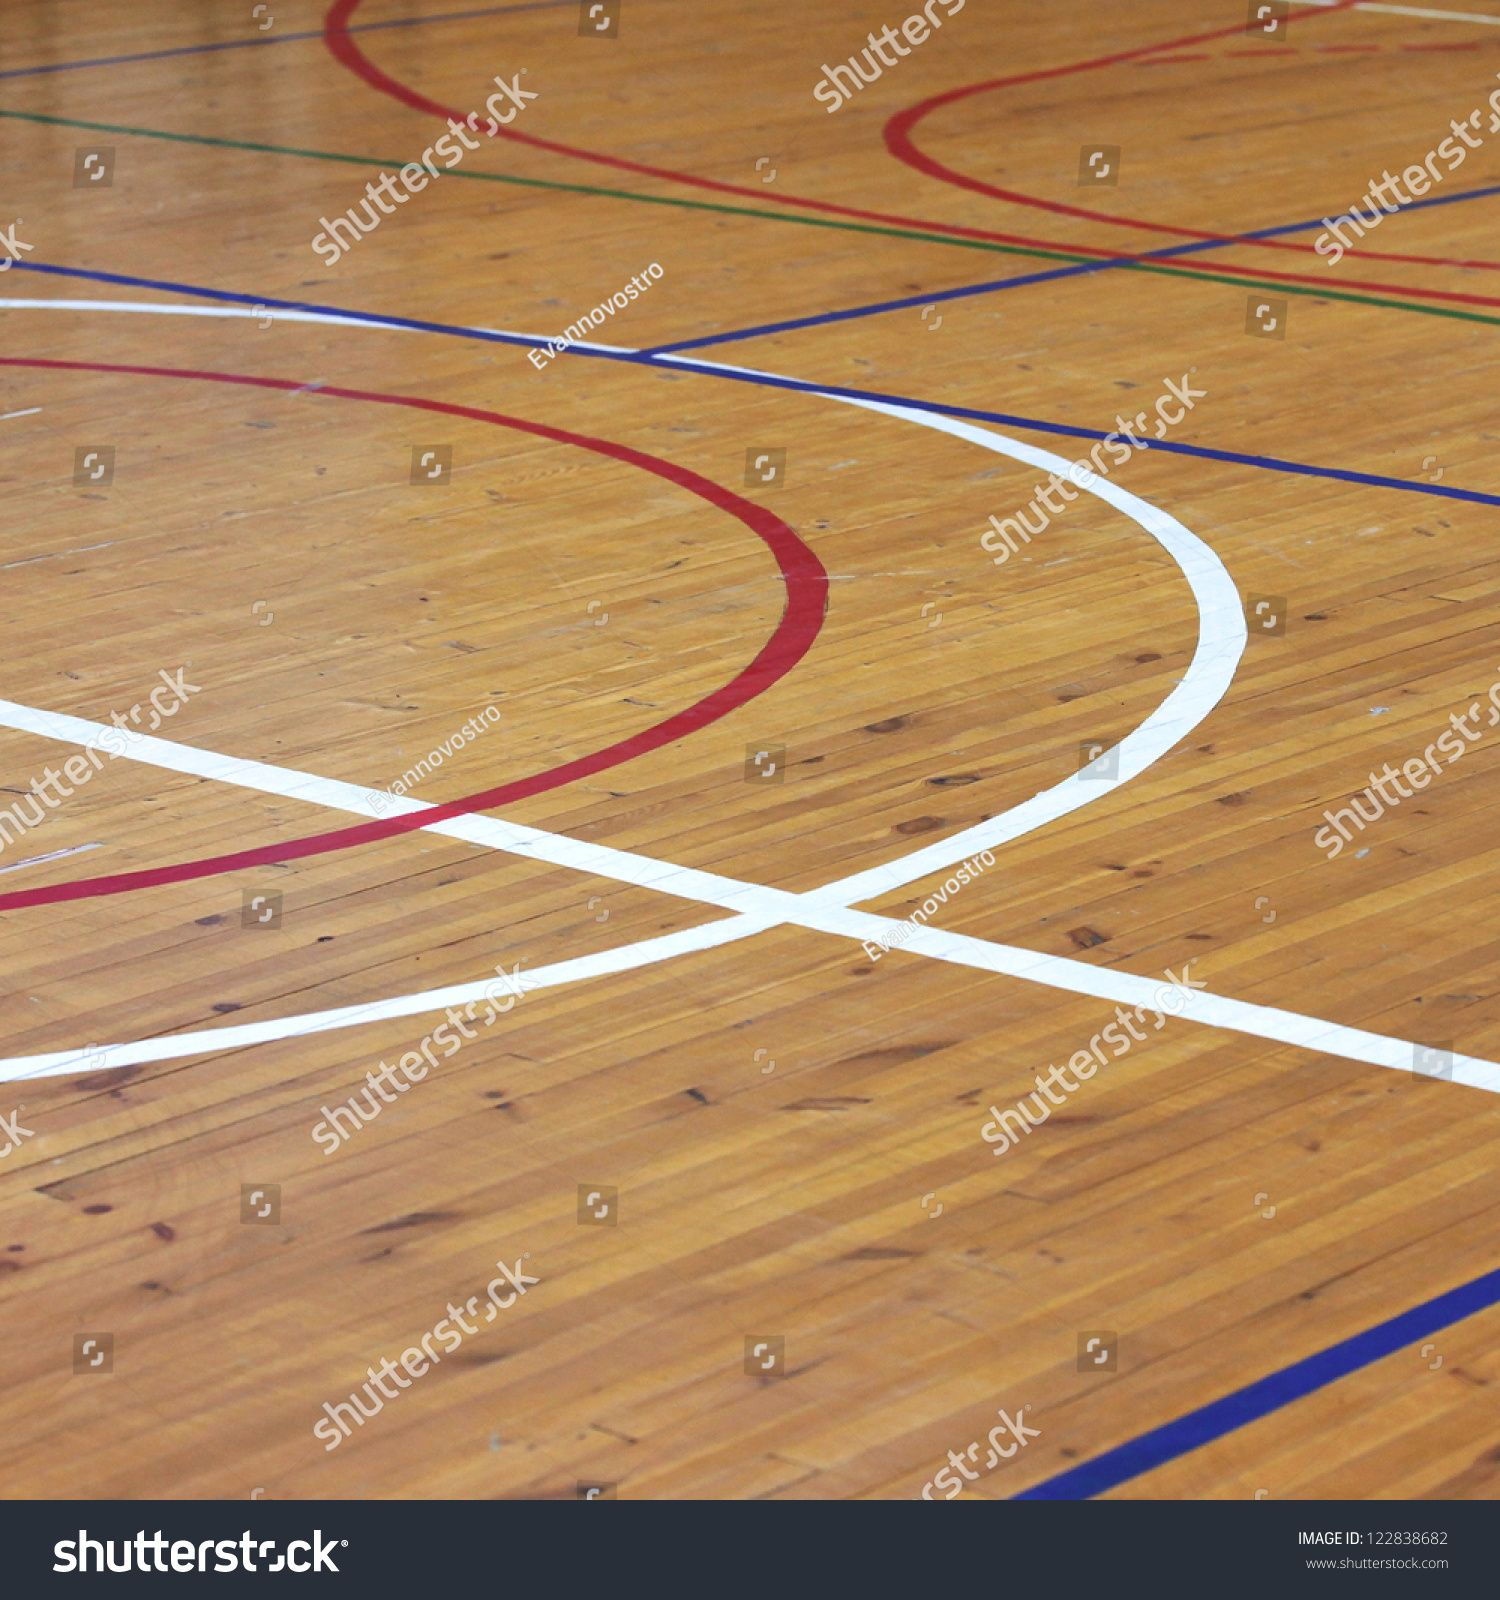 Wooden Floor Of Sports Hall With